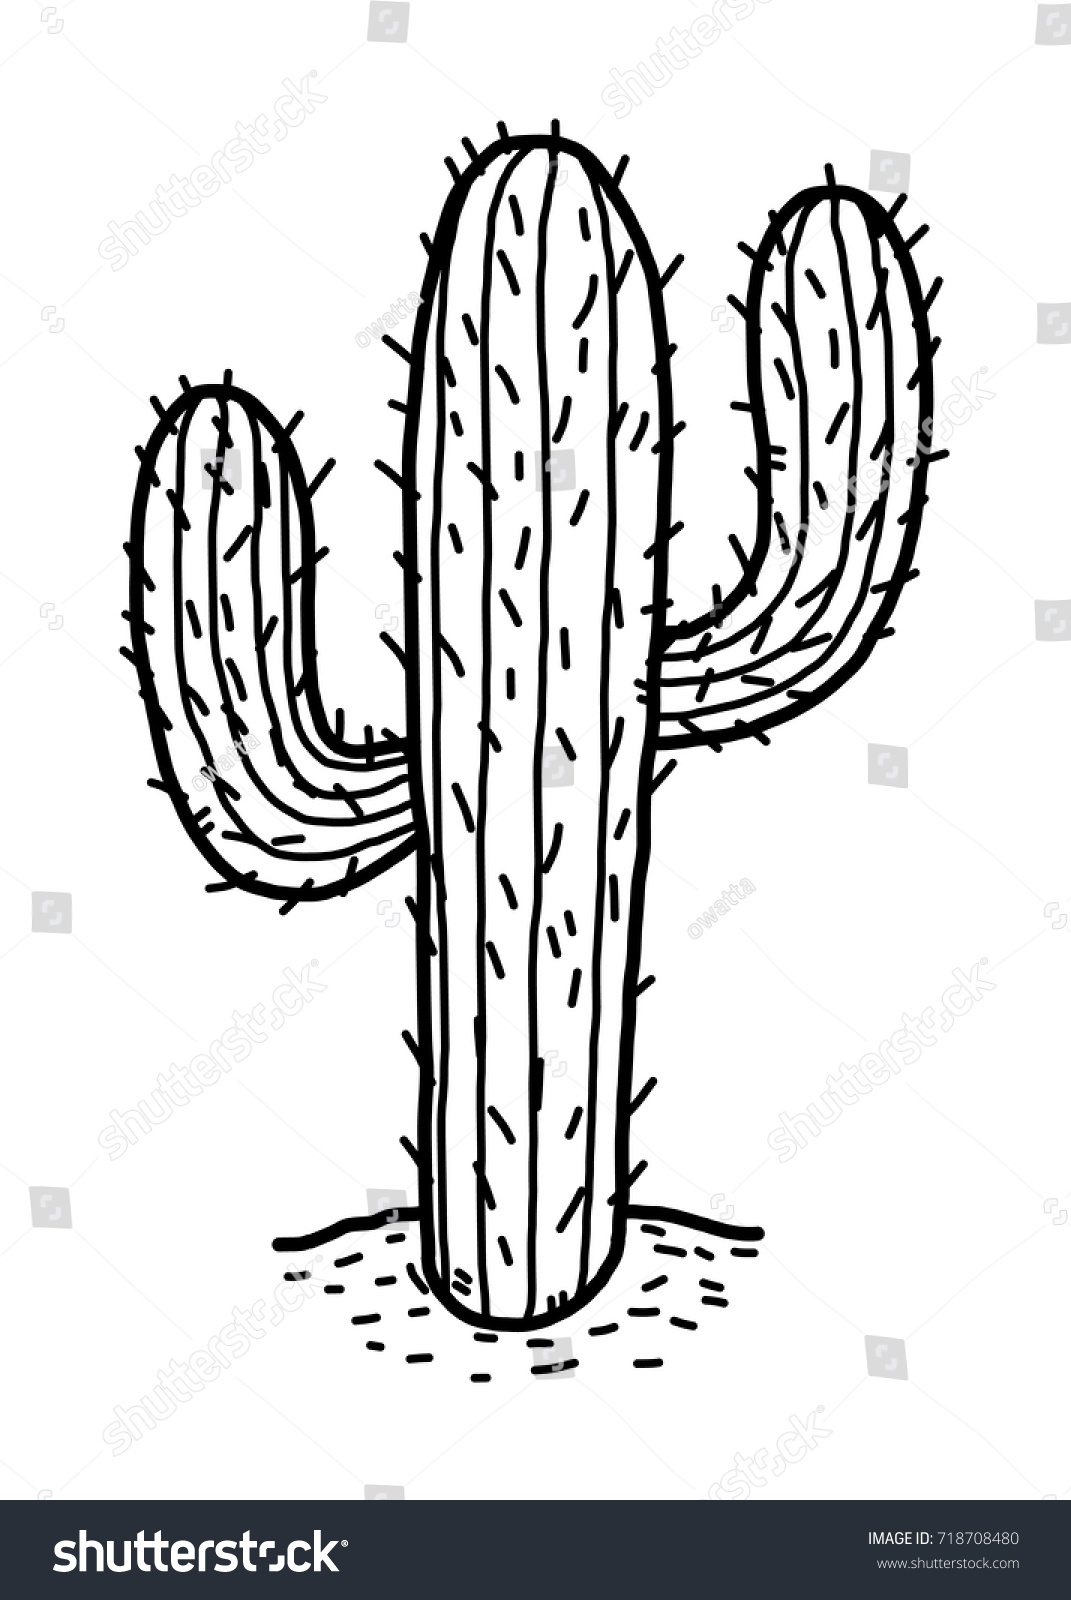 Cactus Desert Cartoon Vector Illustration Black Stock ...